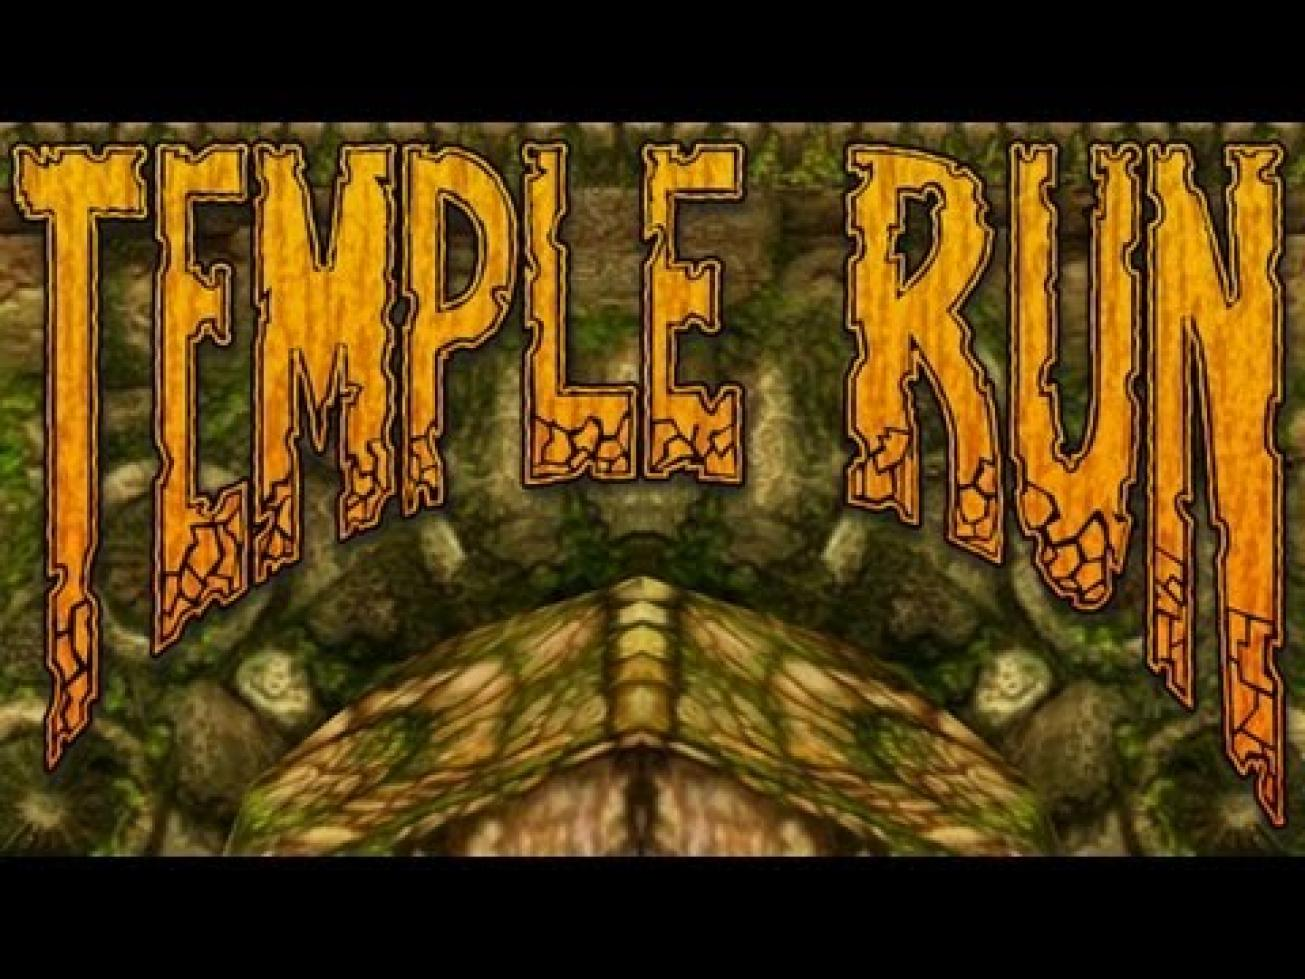 Classic_Game_Room_TEMPLE_RUN_review_for_iPad_and_Android.jpg